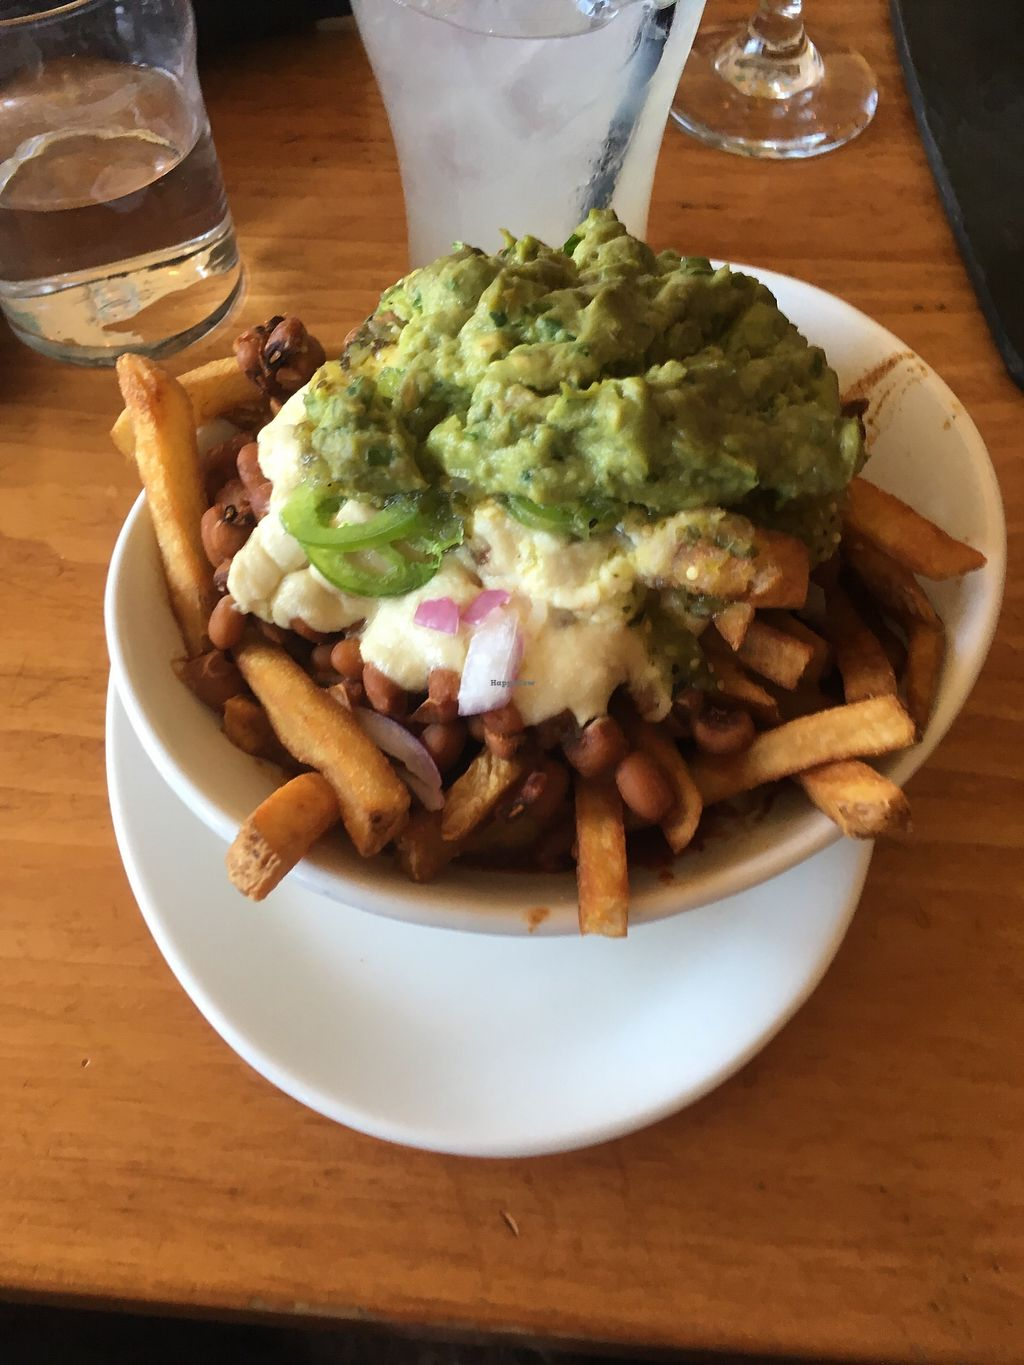 """Photo of Mohawk Bend  by <a href=""""/members/profile/AlexandraPhillips"""">AlexandraPhillips</a> <br/>Vegan chili cheese fries  <br/> July 4, 2017  - <a href='/contact/abuse/image/27727/276768'>Report</a>"""